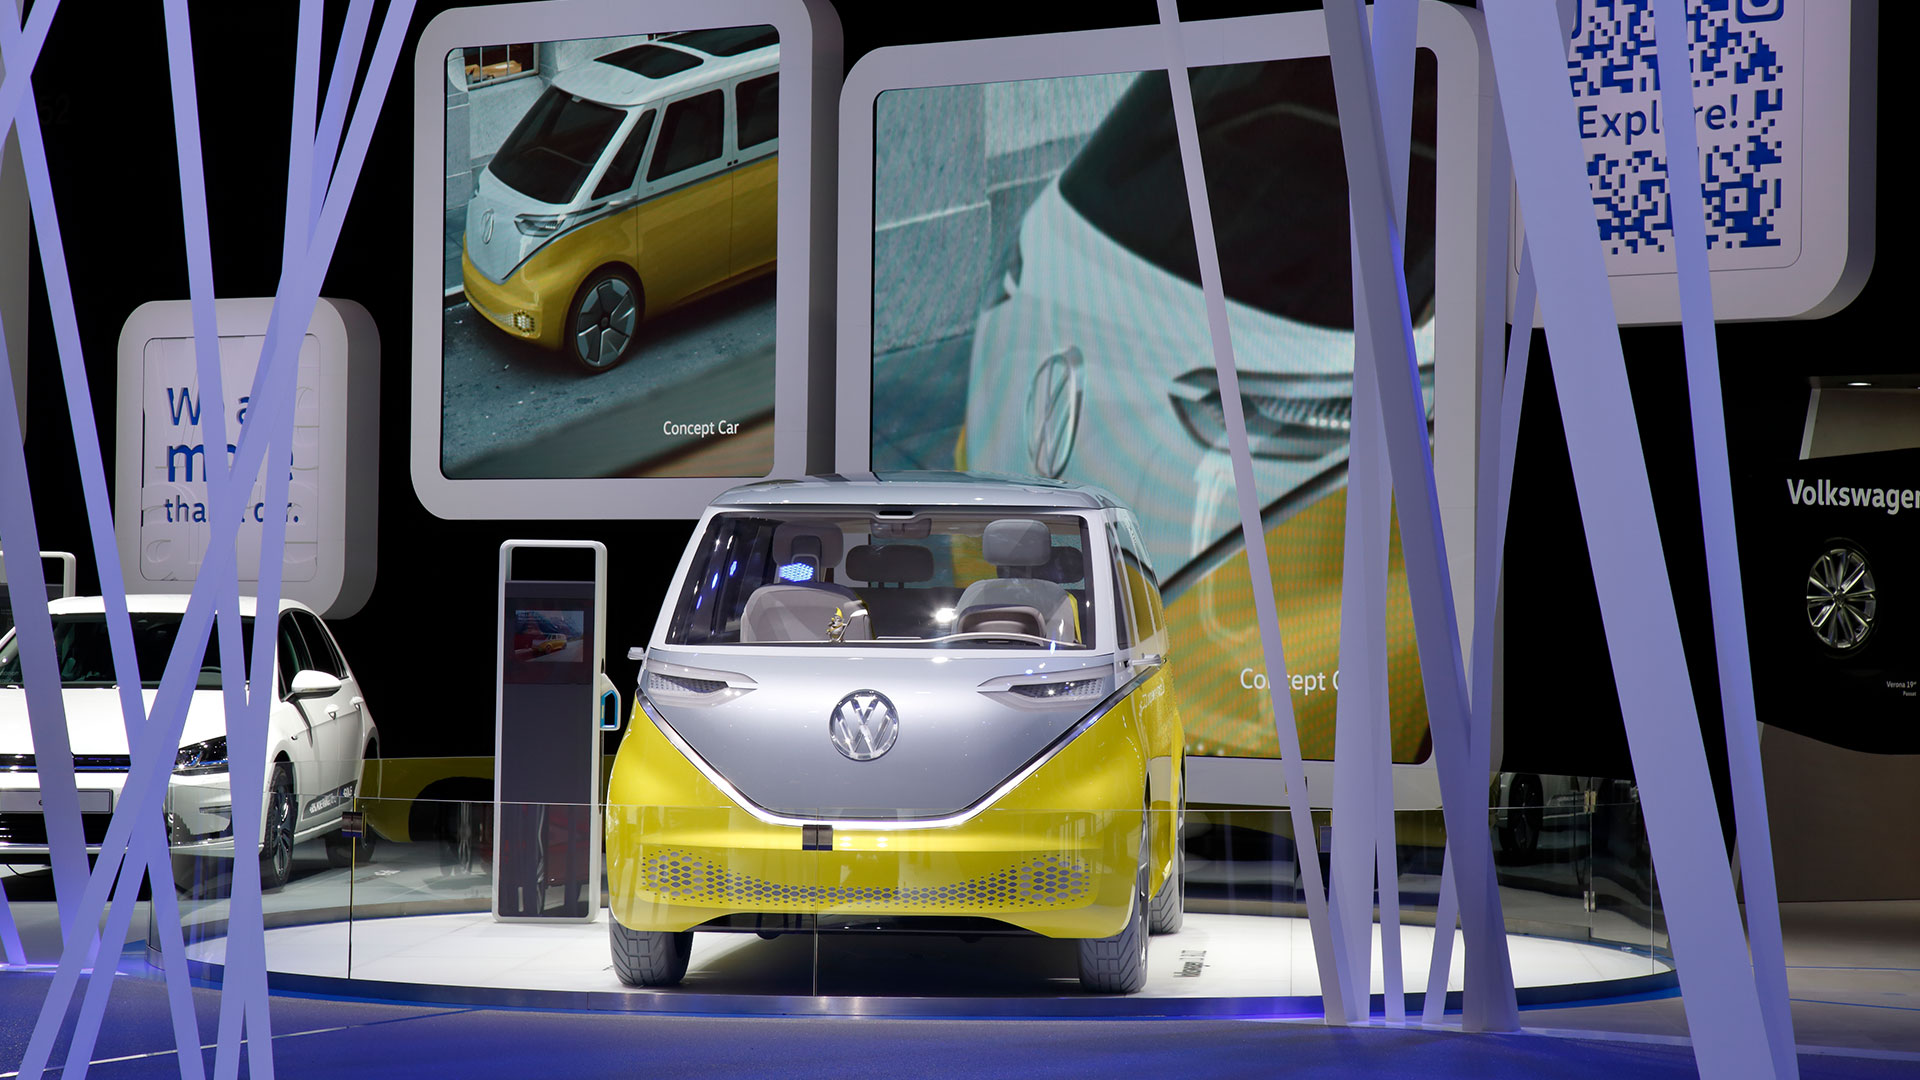 The picture shows a yellow concept car.